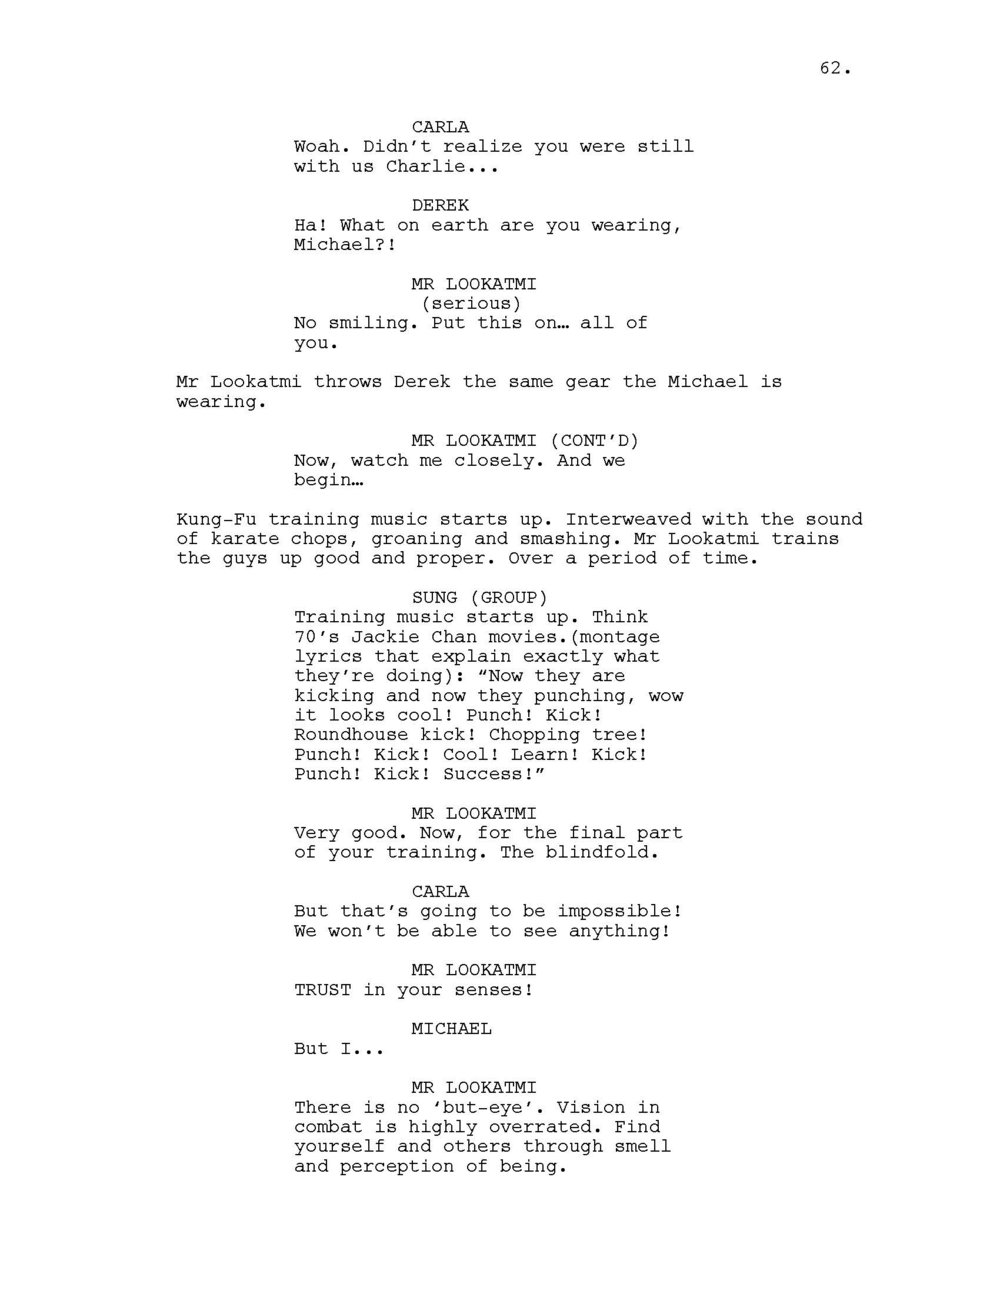 INVISIBLE WORLD SCRIPT_Page_063.jpg